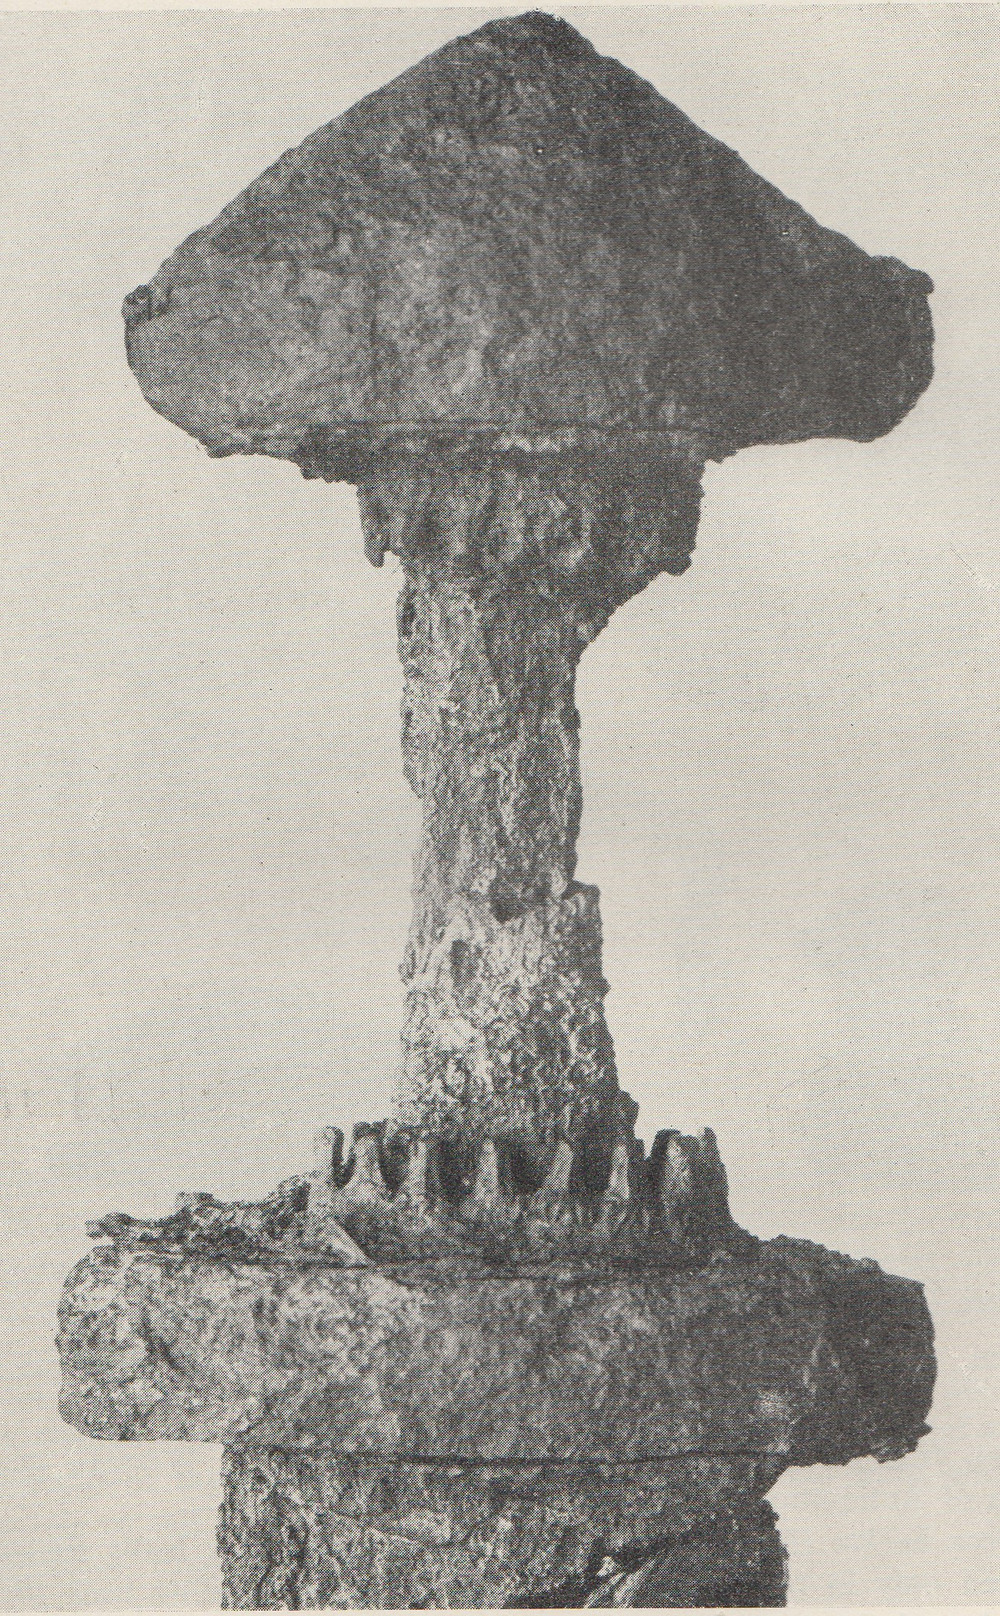 The Swandro Viking sword photographed in the 1920s